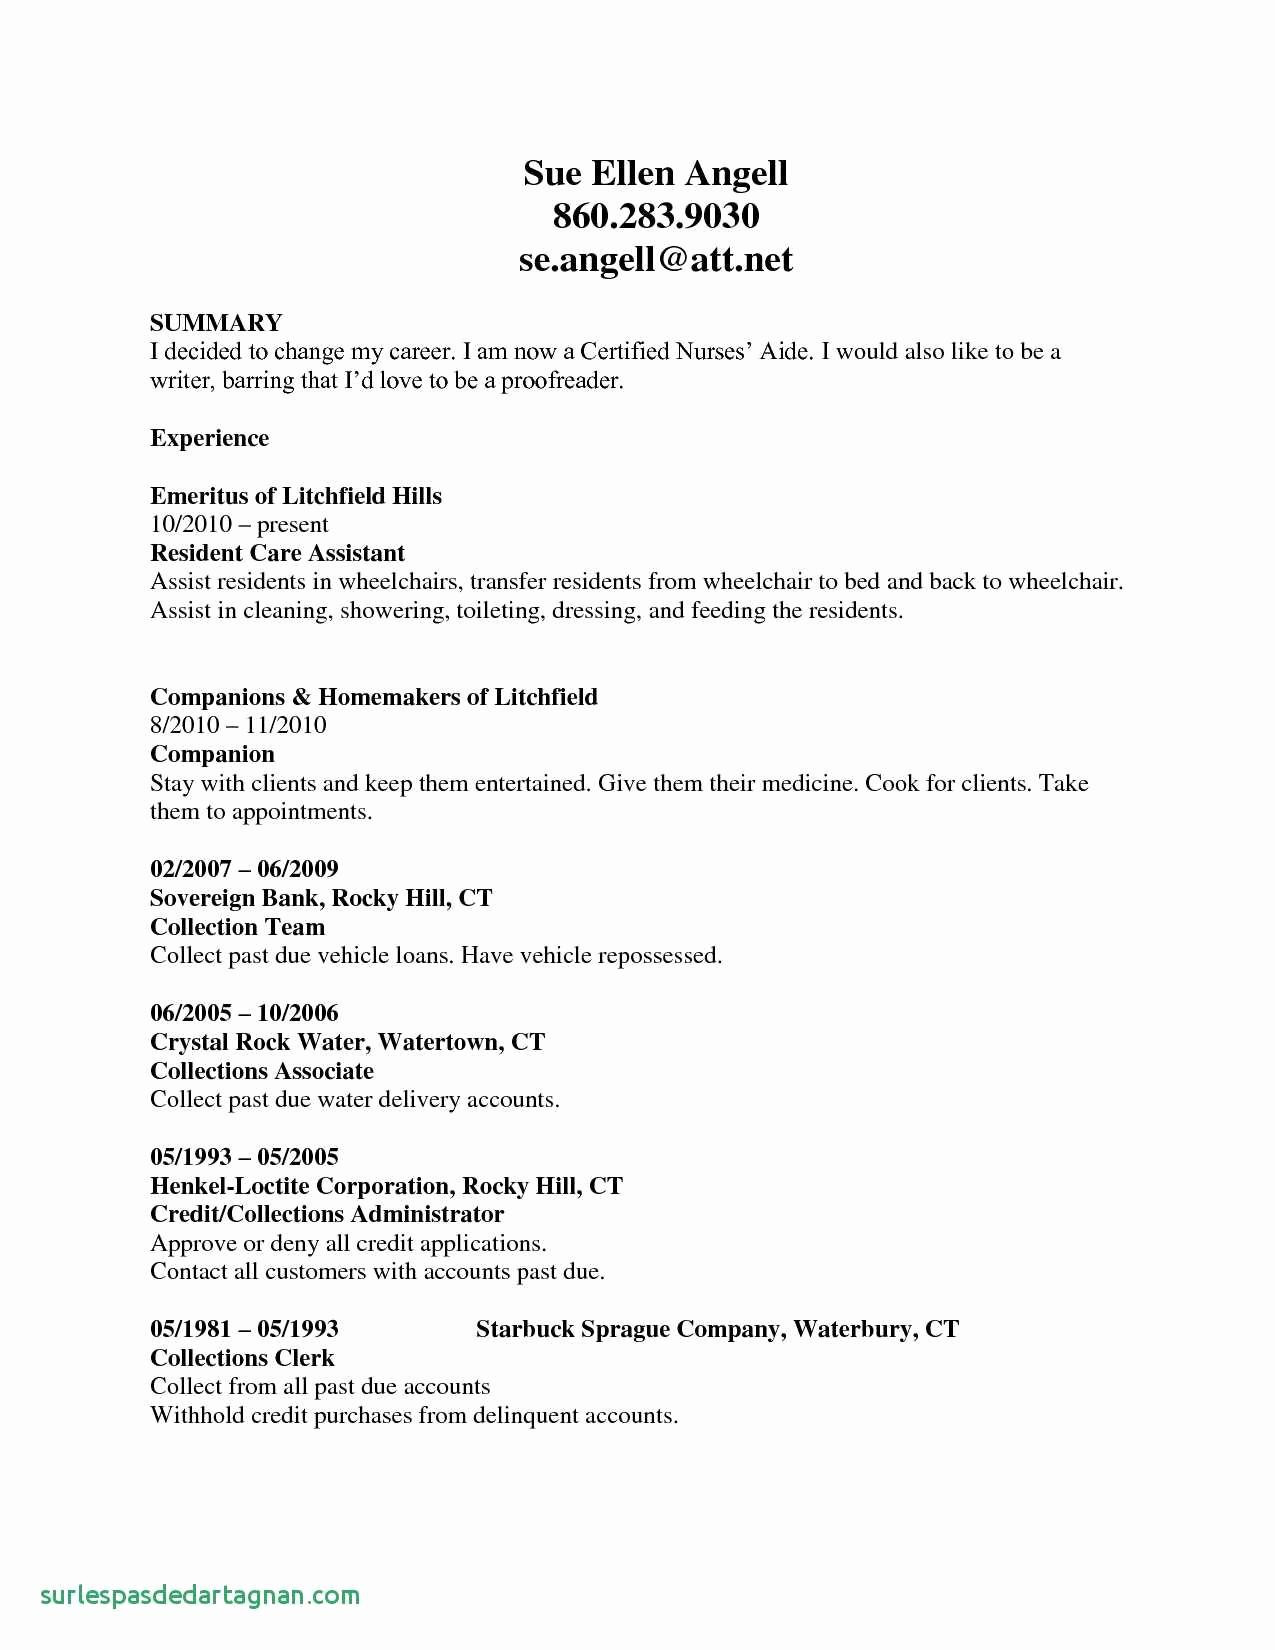 Nursing Resume Objective - Used Car Career Resume Luxury Student Resume Summary Examples Nice